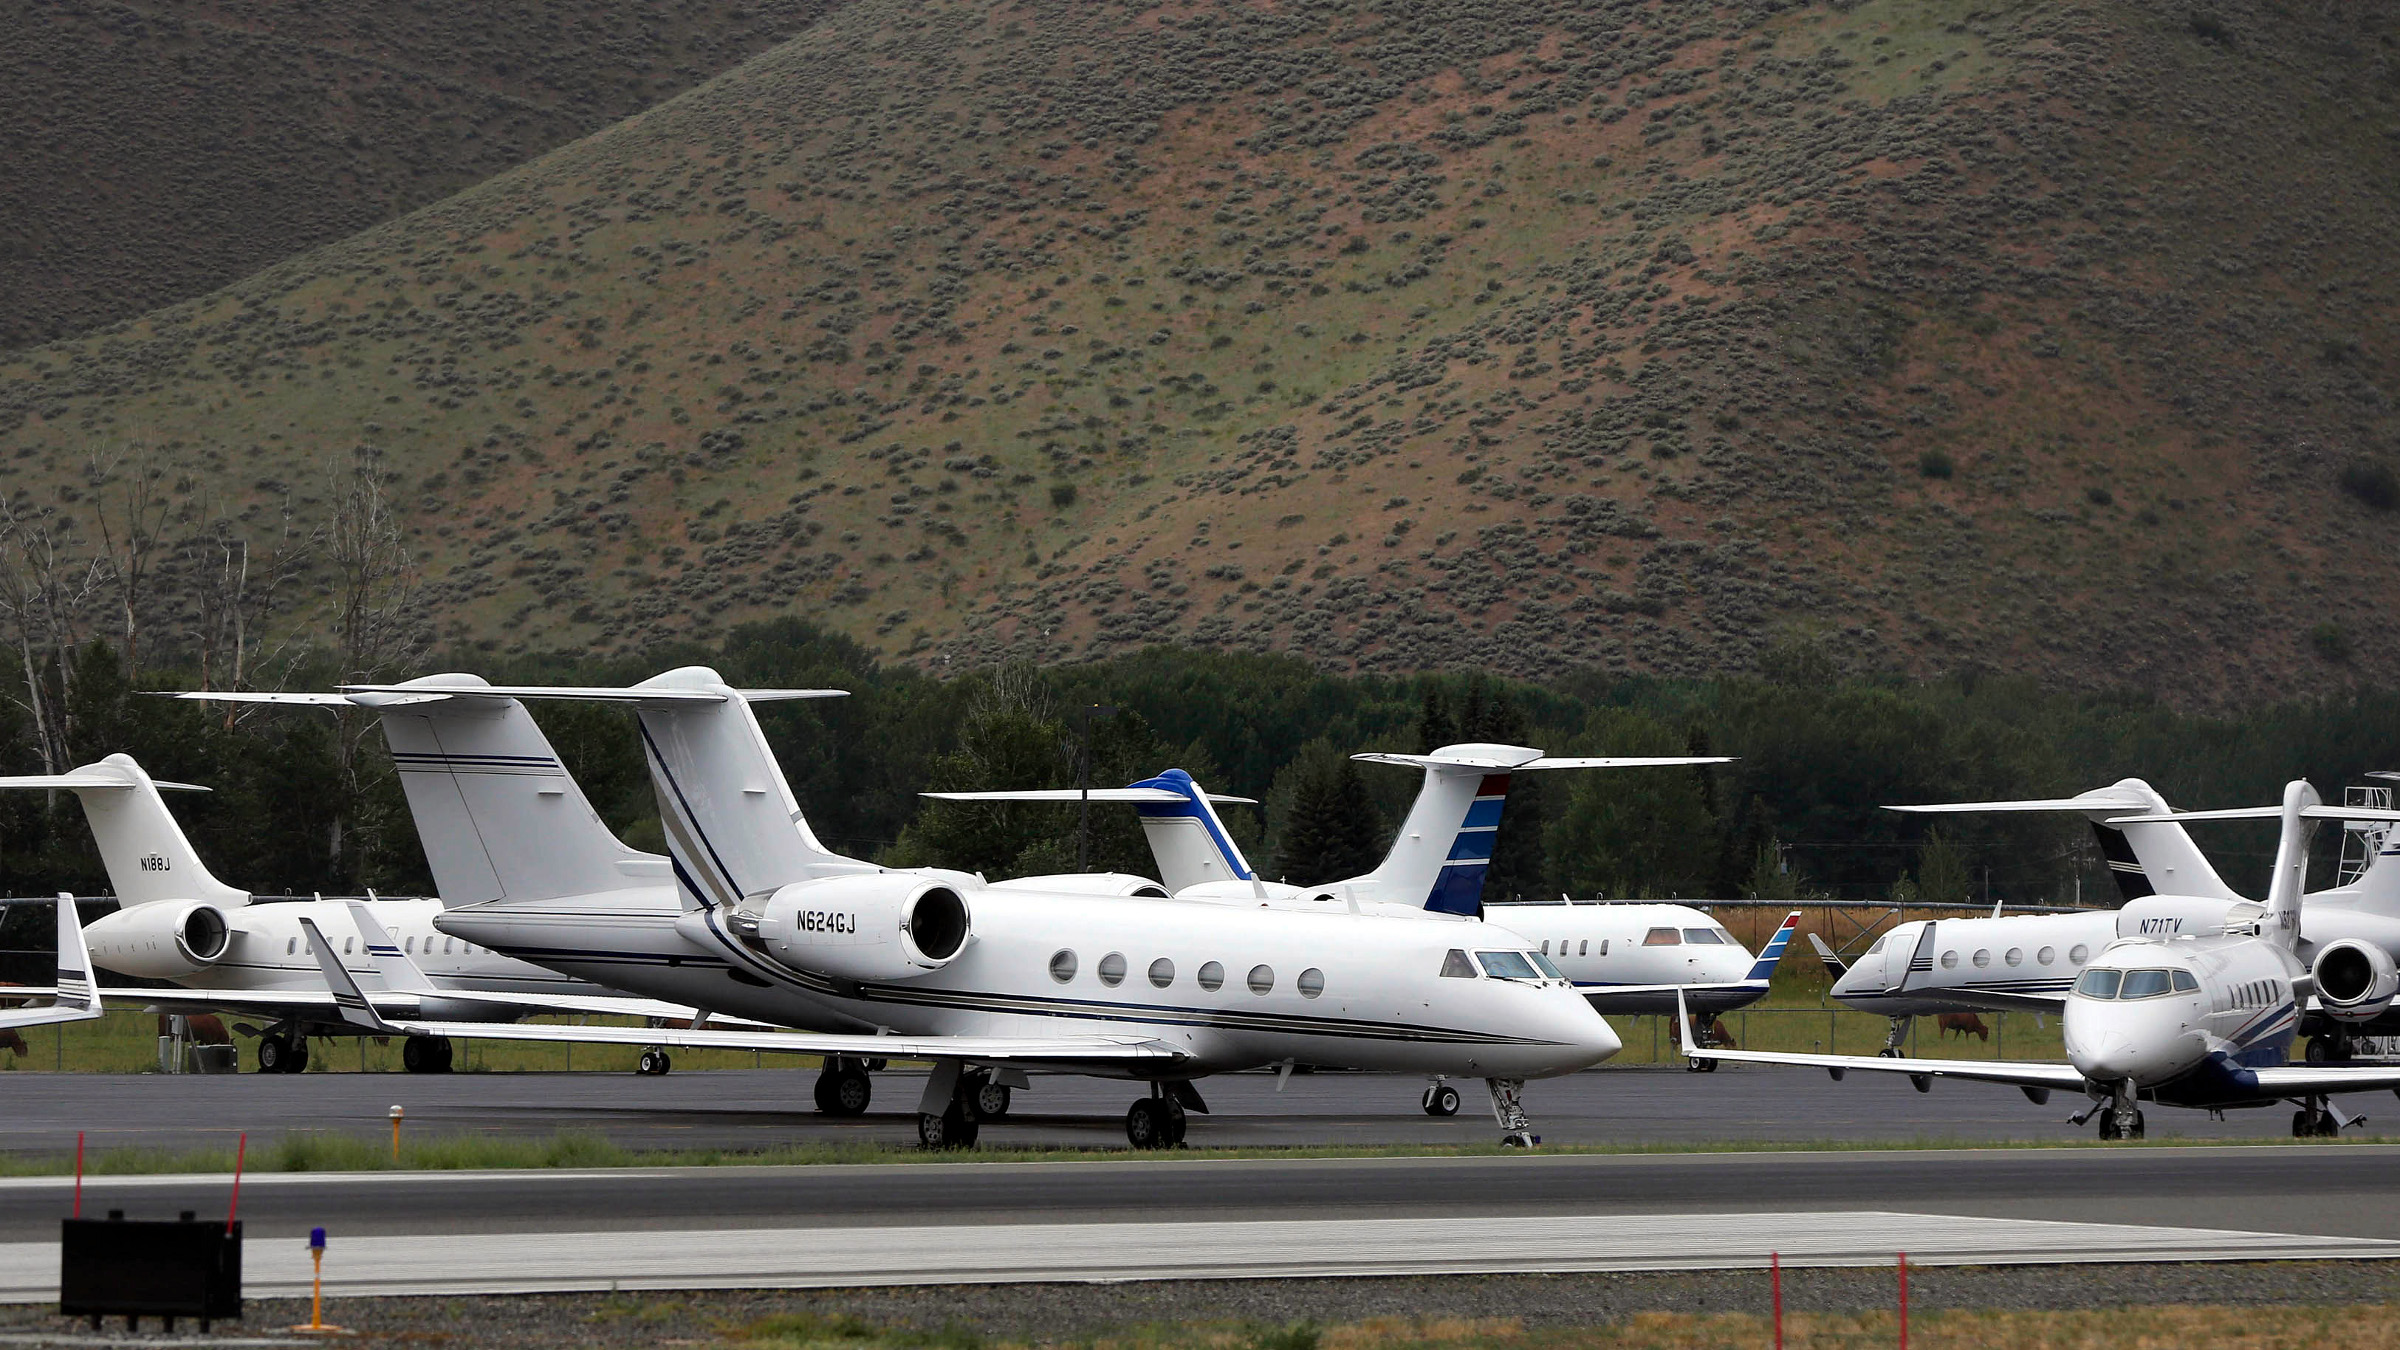 At least 20 private jet aircraft sit parked at the Friedman Memorial Airport during the Allen & Co Media Conference in Sun Valley, Idaho July 13, 2012.